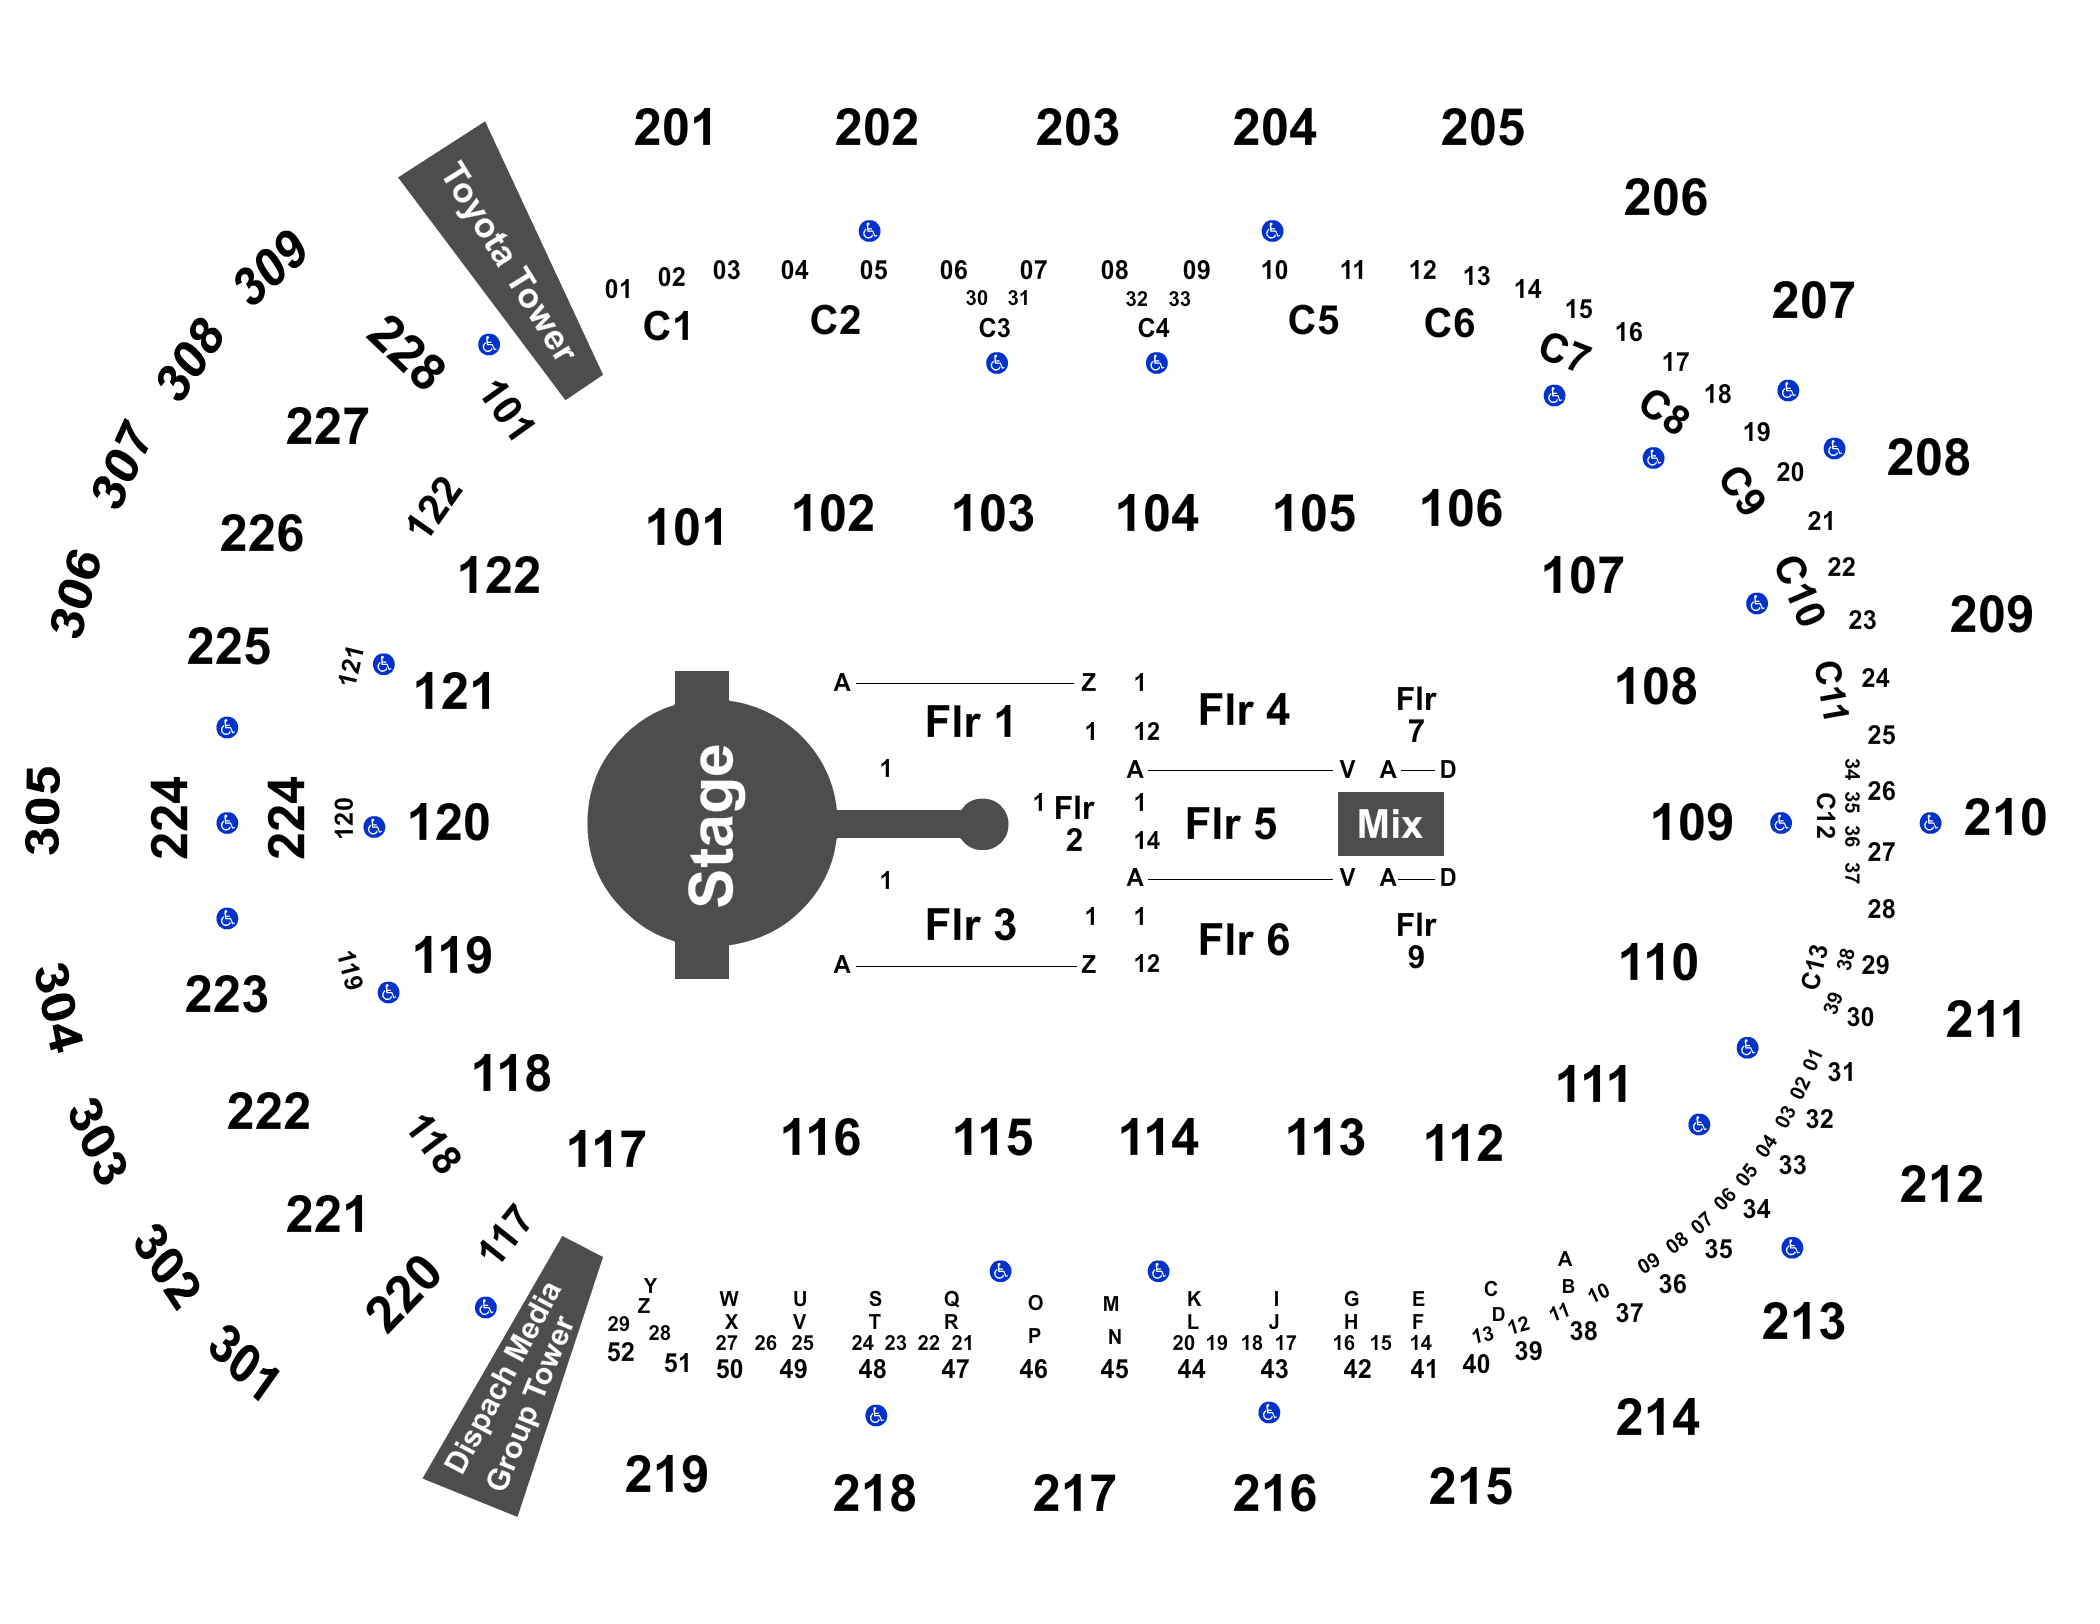 Brett eldredge nationwide arena tickets columbus 3 15 2018 full map kristyandbryce Image collections